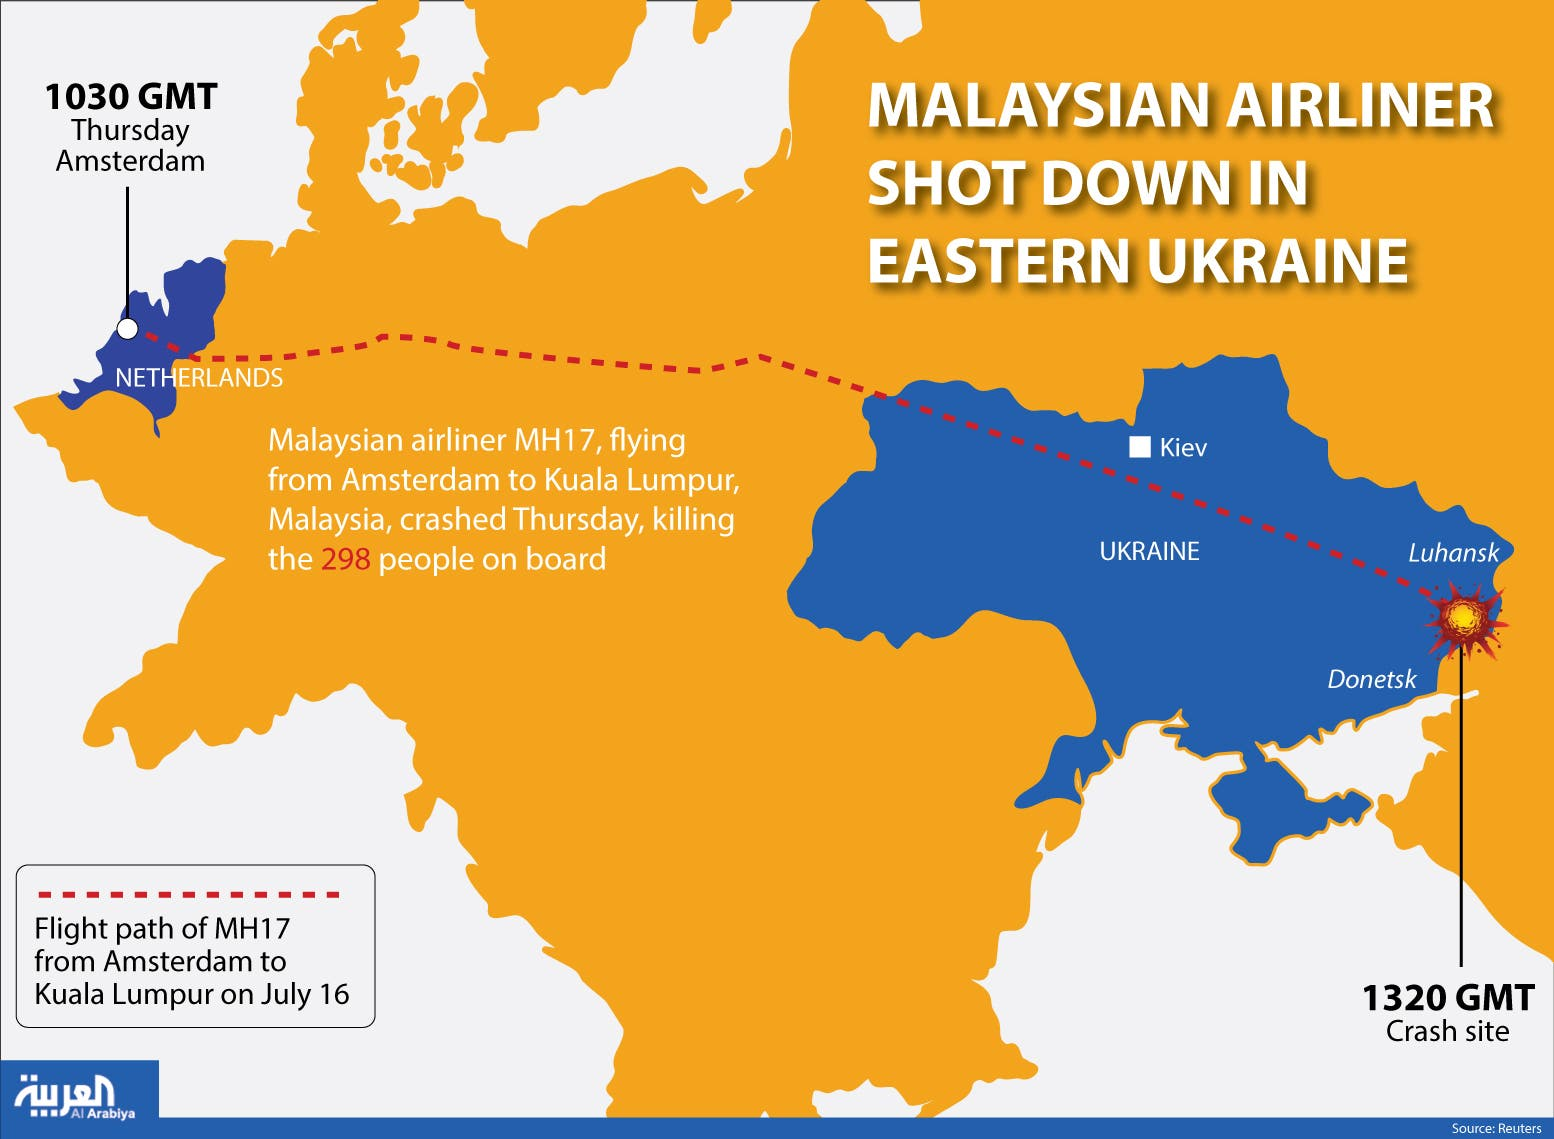 Infographic: Malaysian Airliner shot down in eastern Ukraine